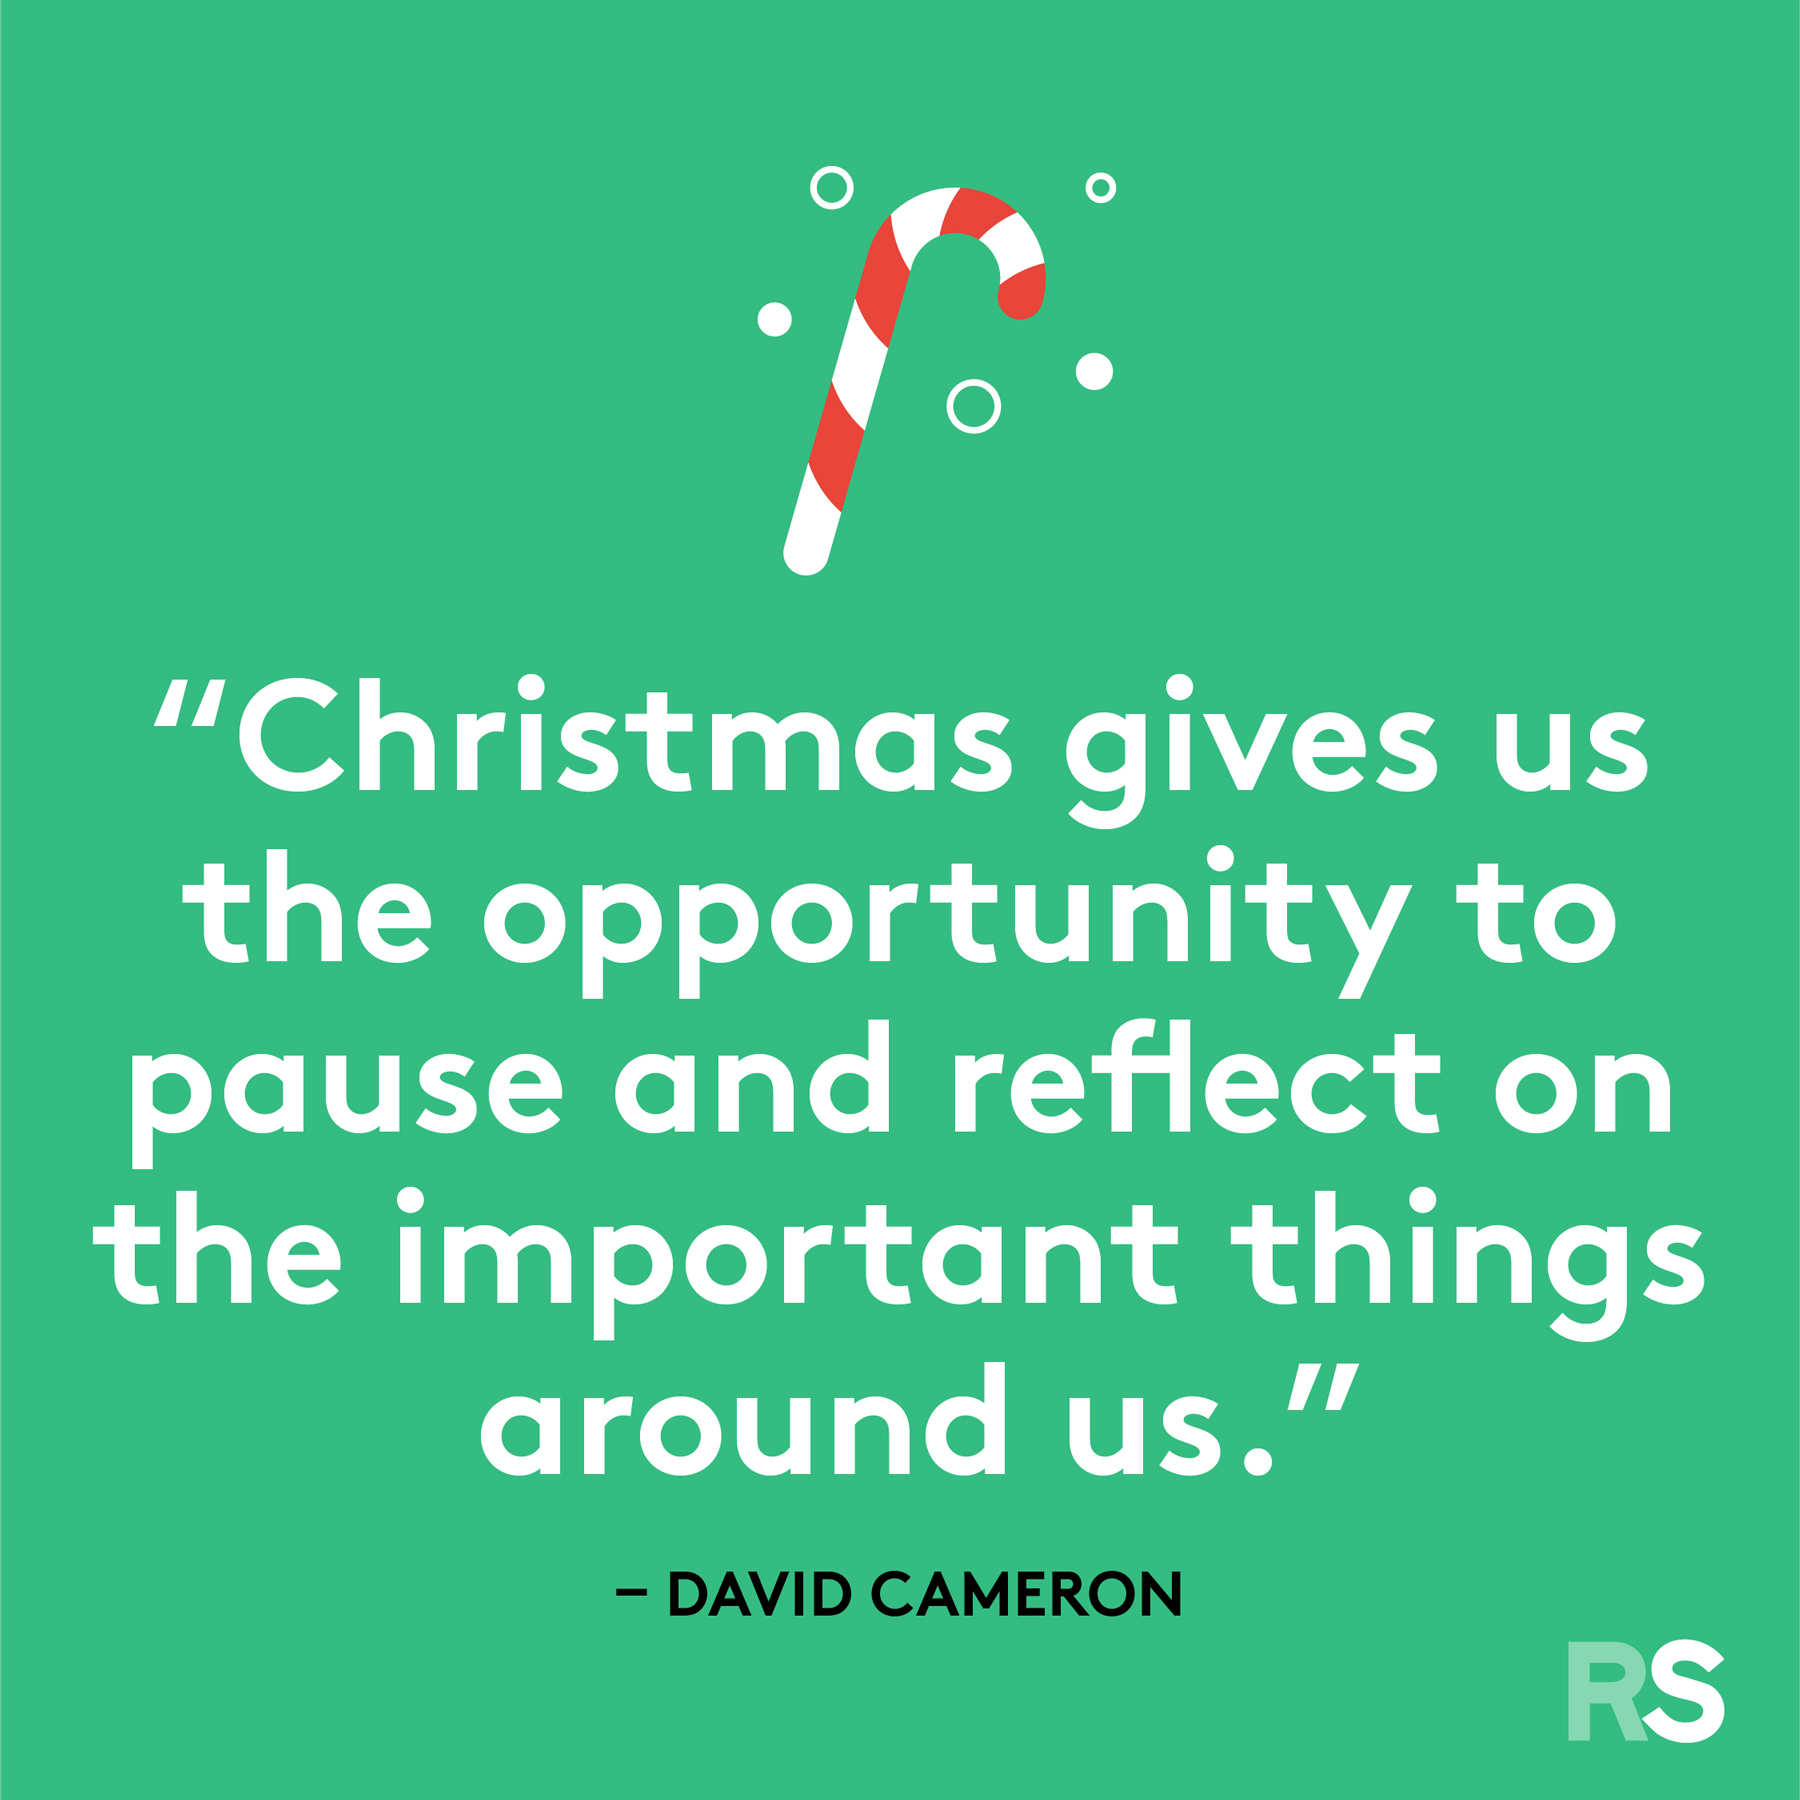 Best Christmas quotes - David Cameron